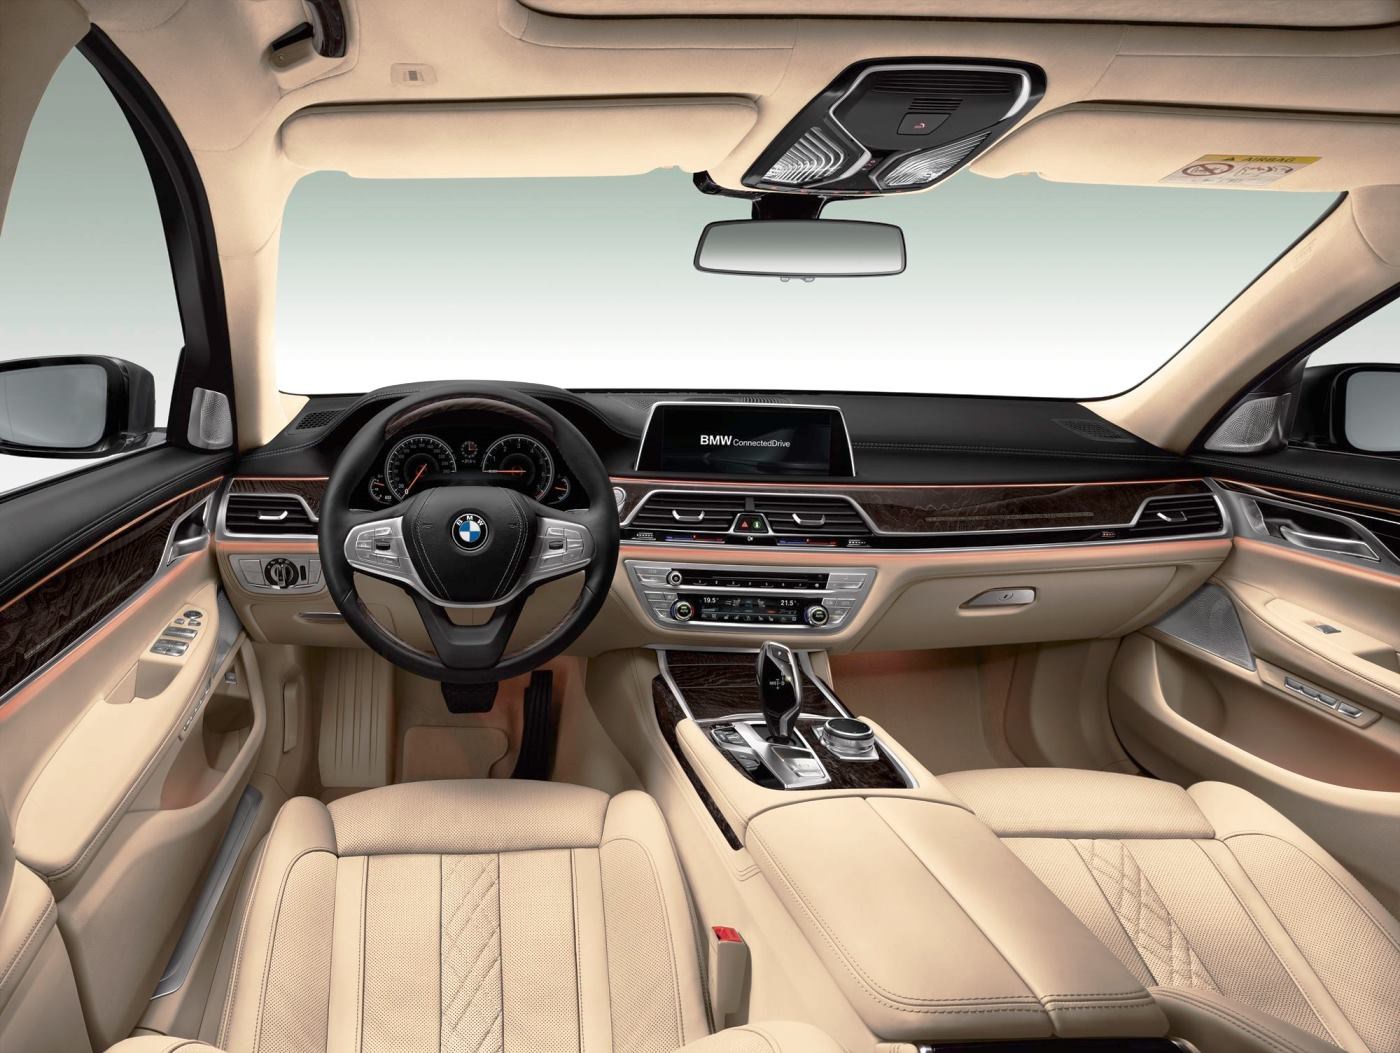 2016 BMW 7 Series Interior Photos 13